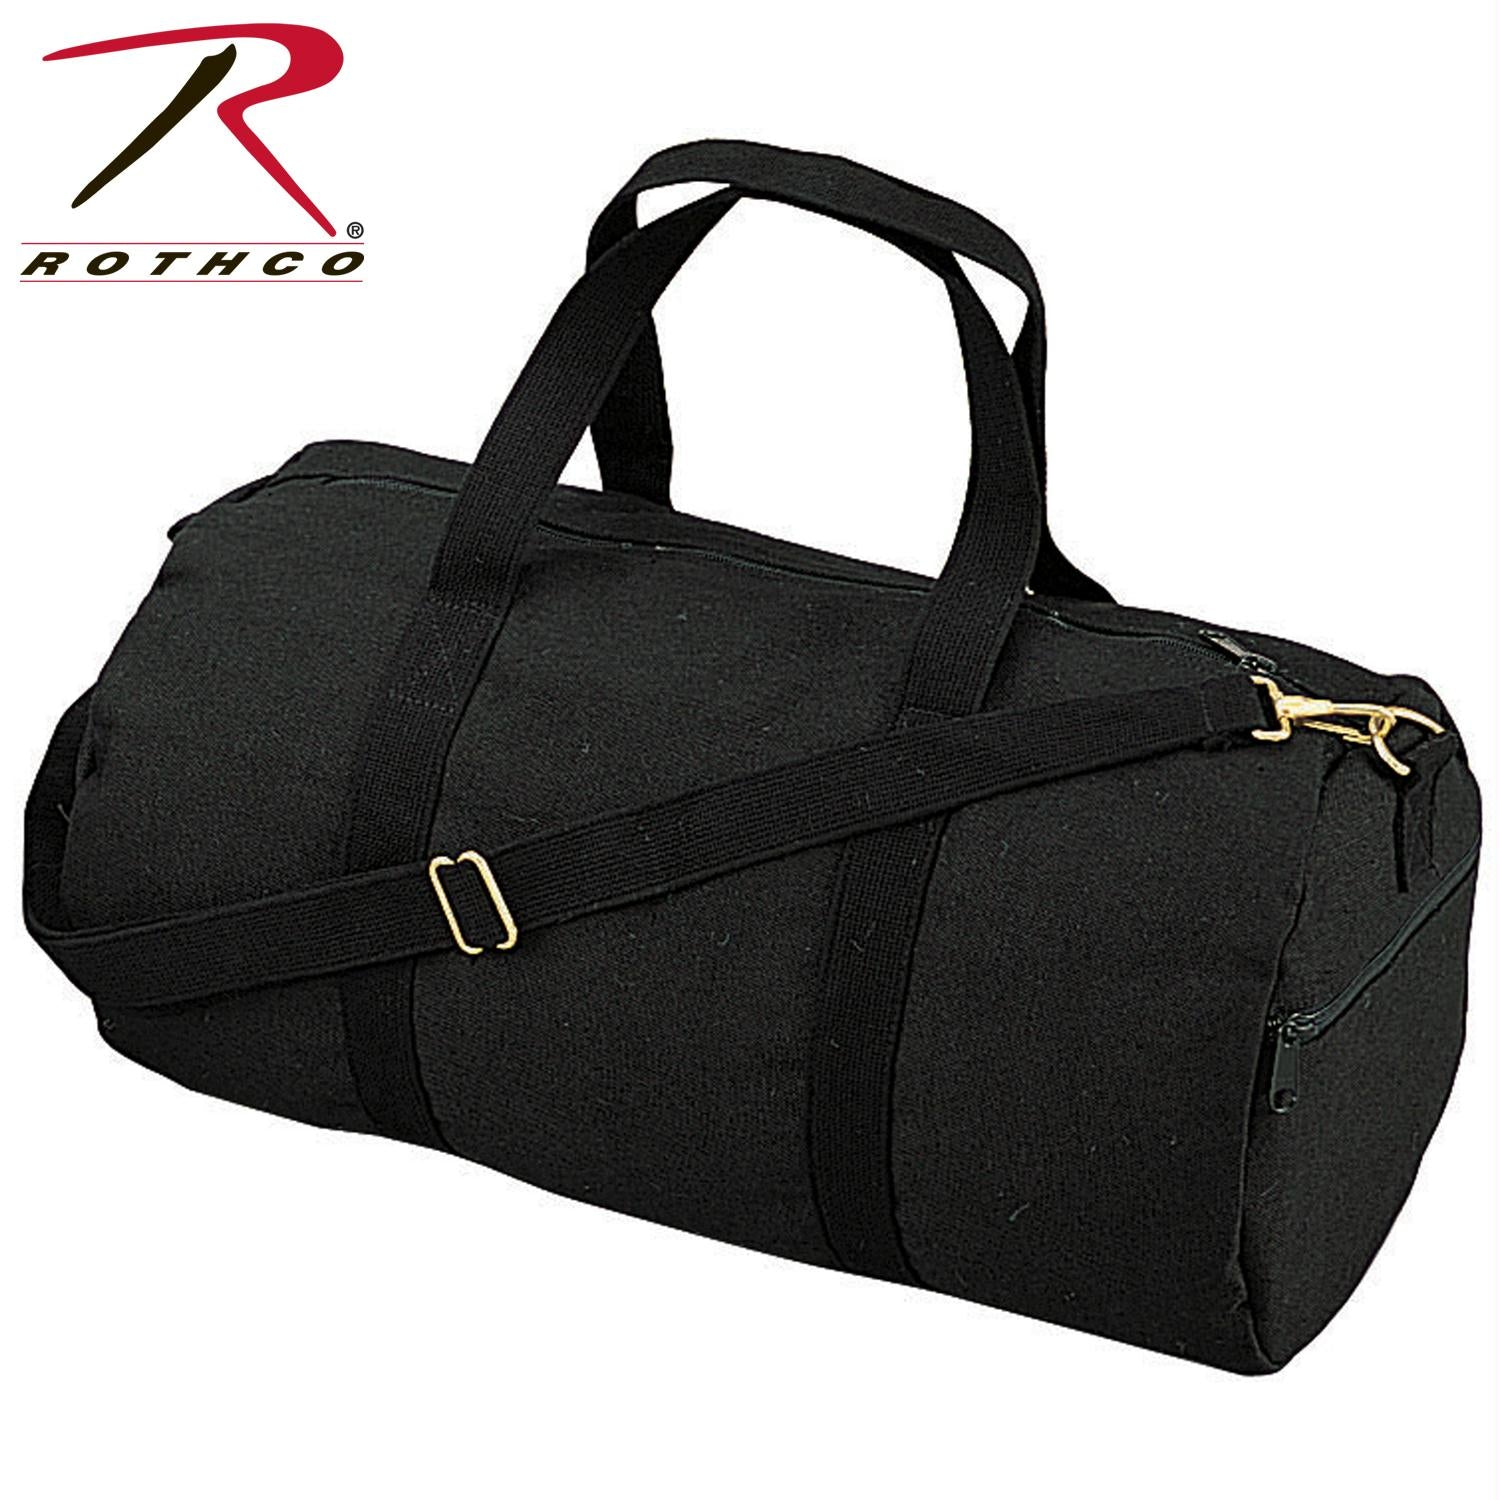 Rothco Canvas Shoulder Duffle Bag - 19 Inch - Black